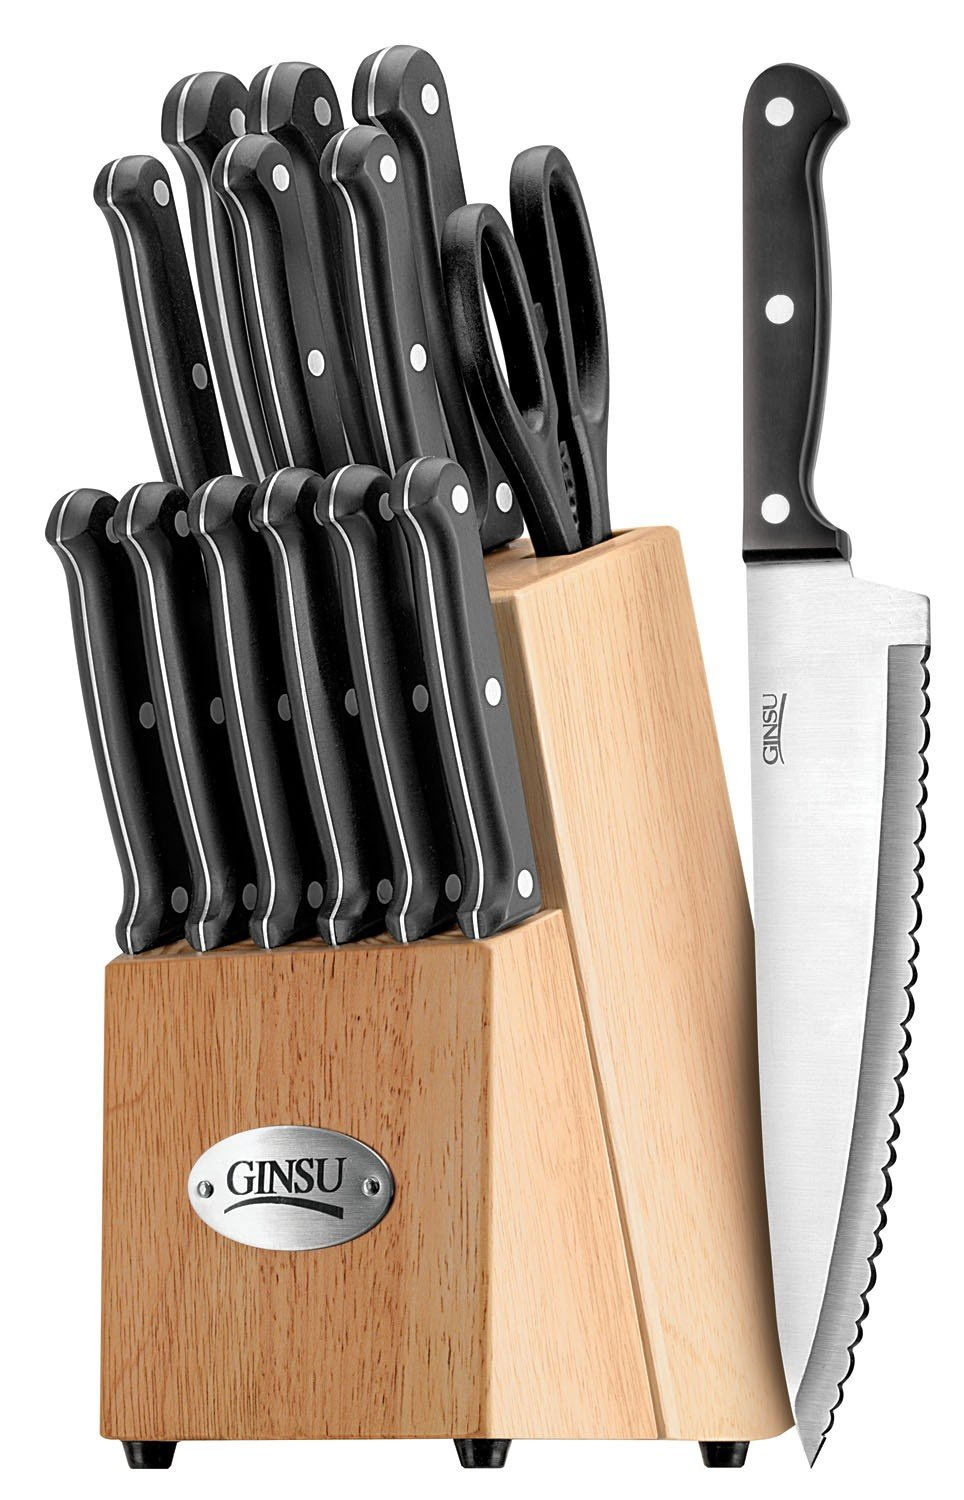 Ginsu 04817 International Traditions Knife Set